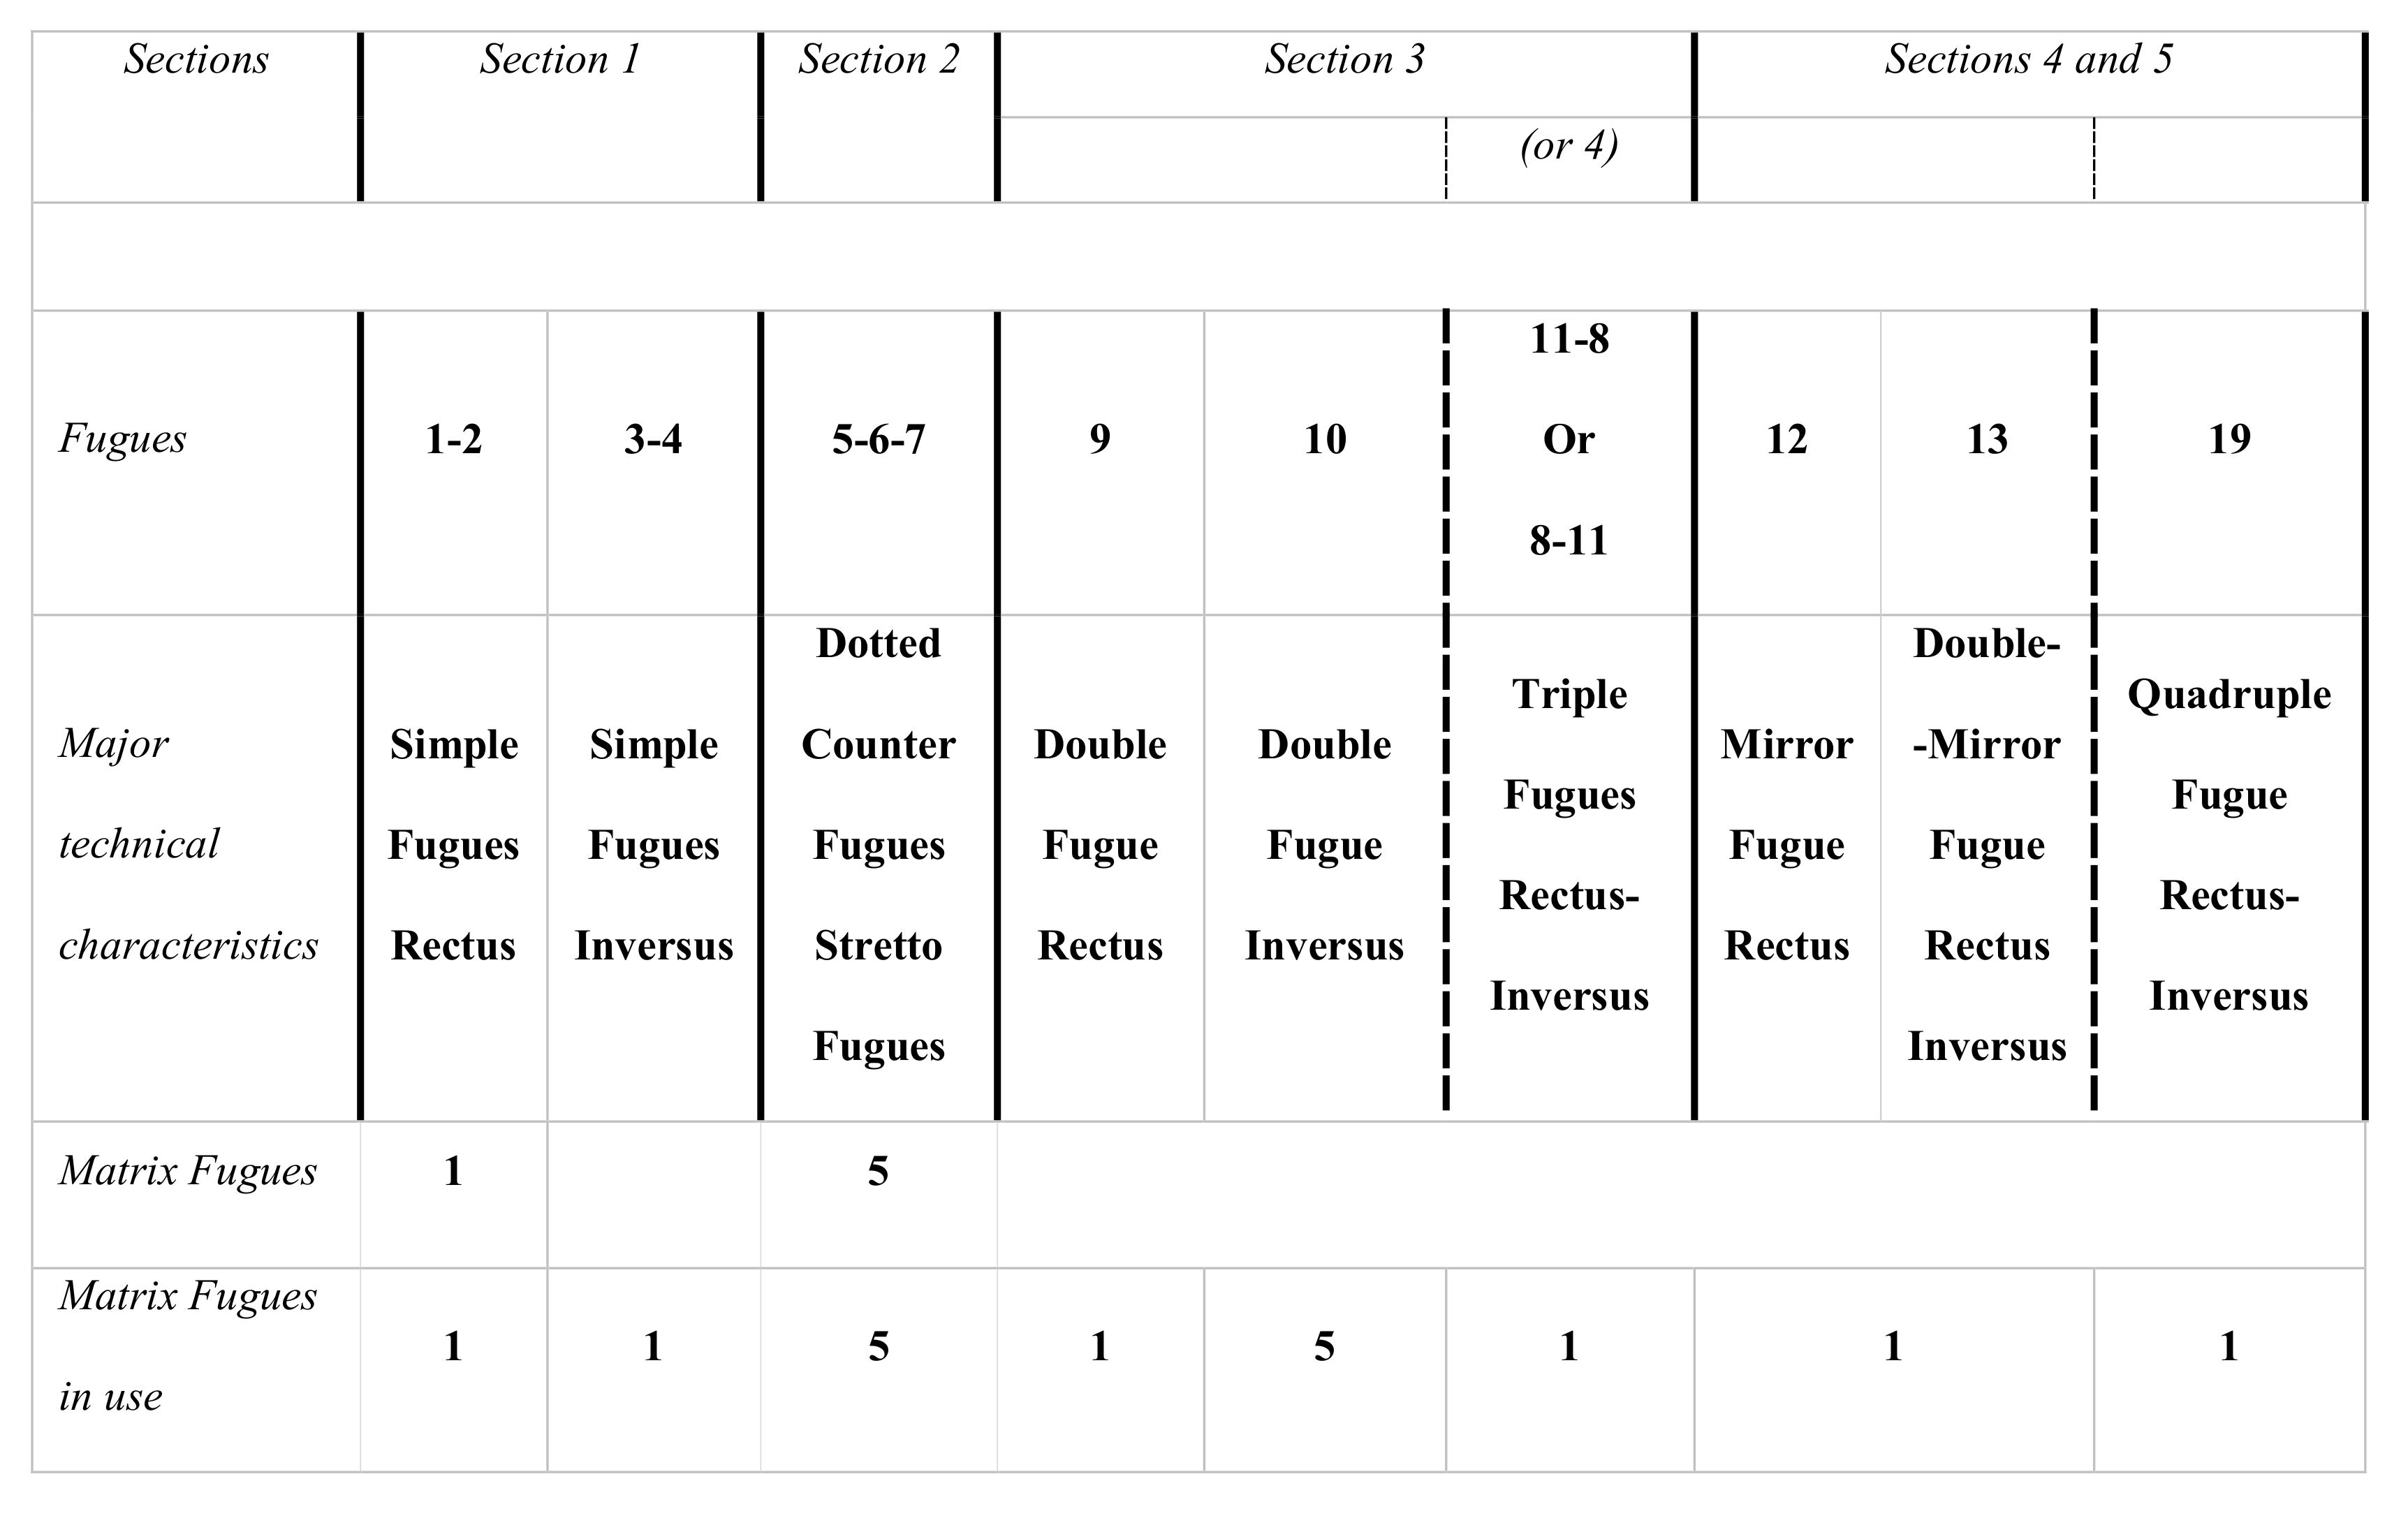 Figure 1: Synoptic table of the sections inside the <em>Art of Fugue</em> with the material from the first edition.